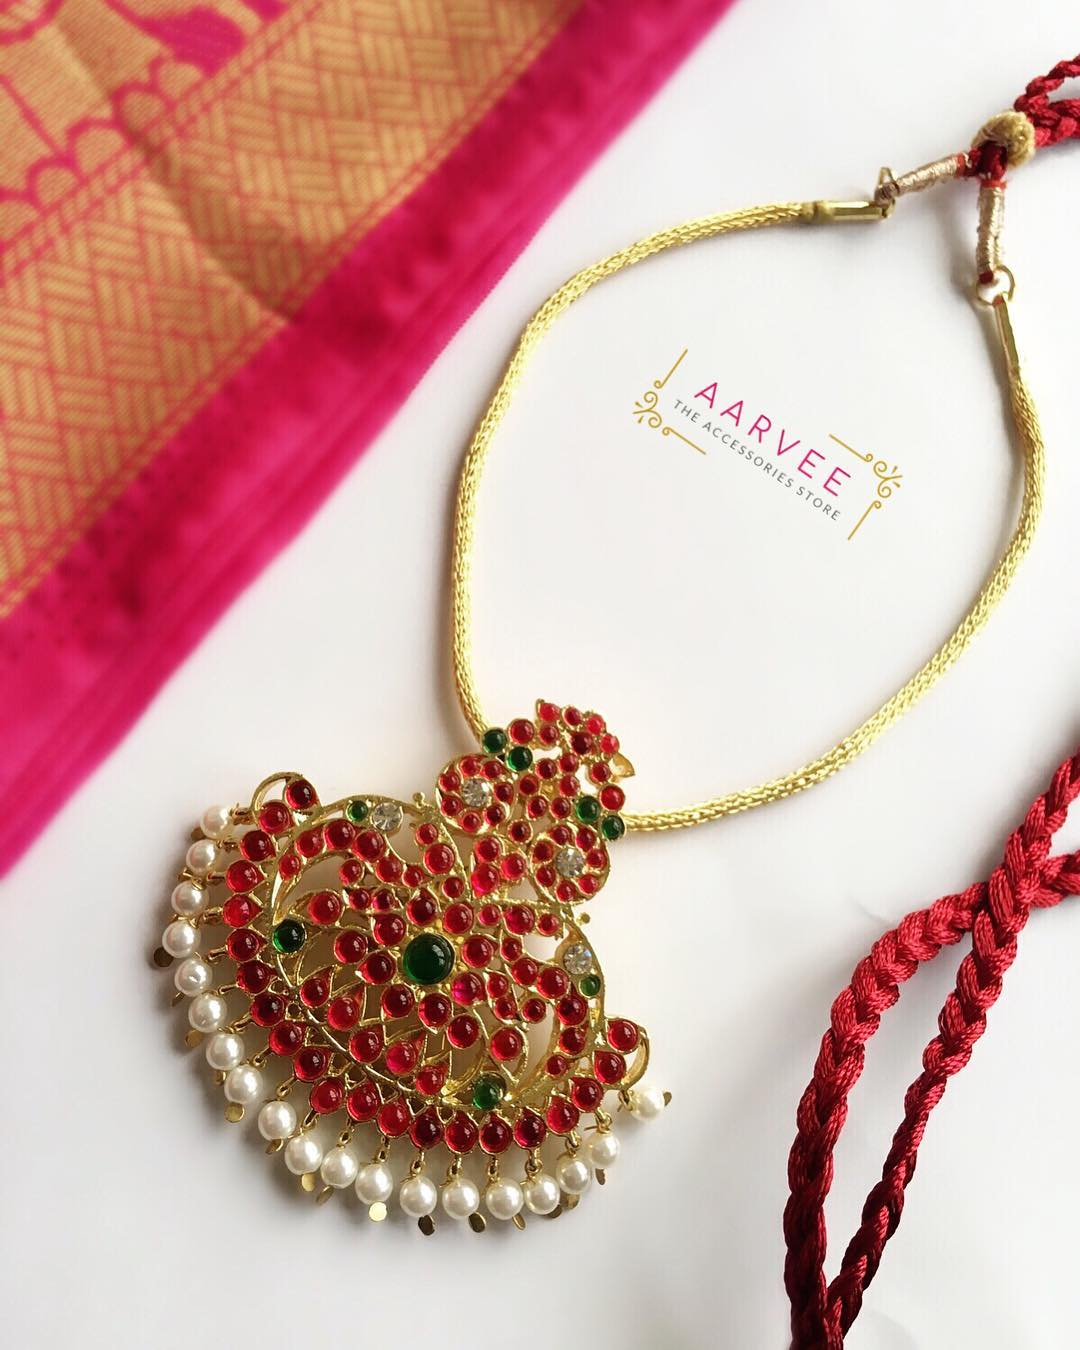 kemp-attigai-necklace-designs (2)